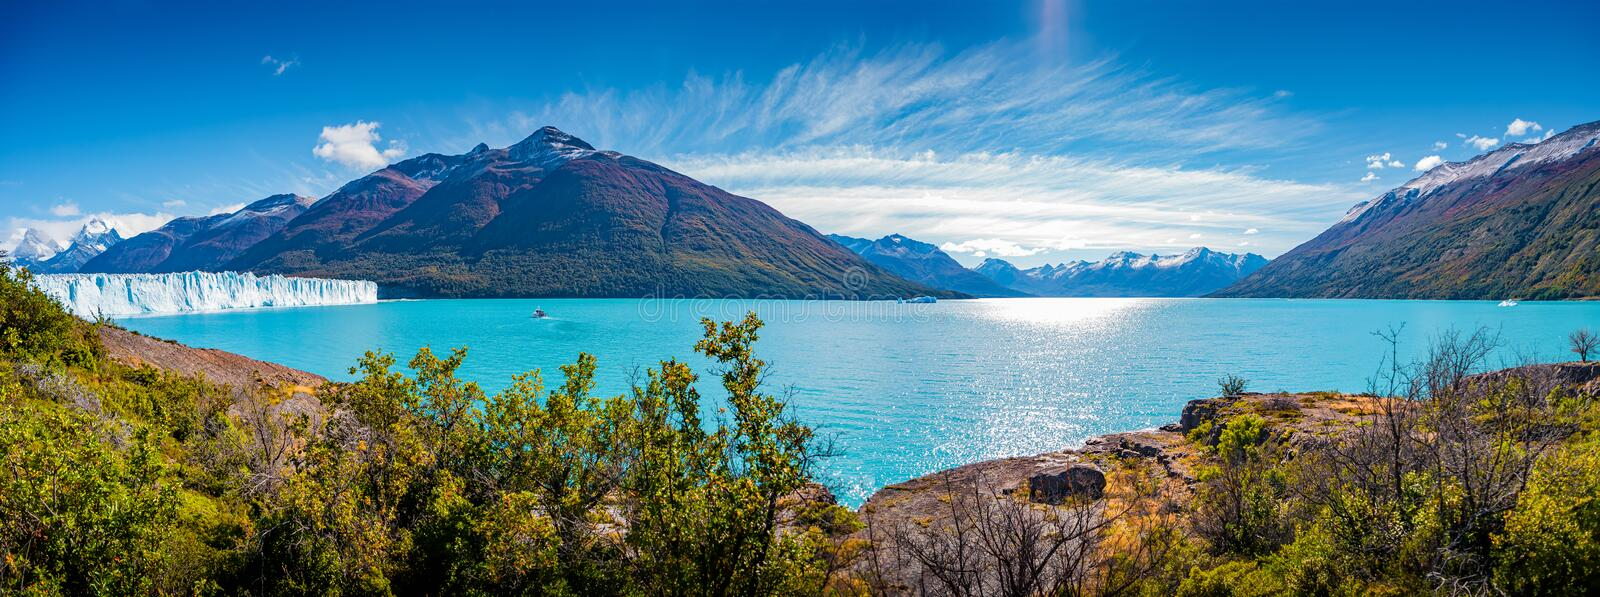 Panoramic view of the huge Perito Moreno glacier in Patagonia in golden Autumn, South America, sunny day, blue sky royalty free stock photos